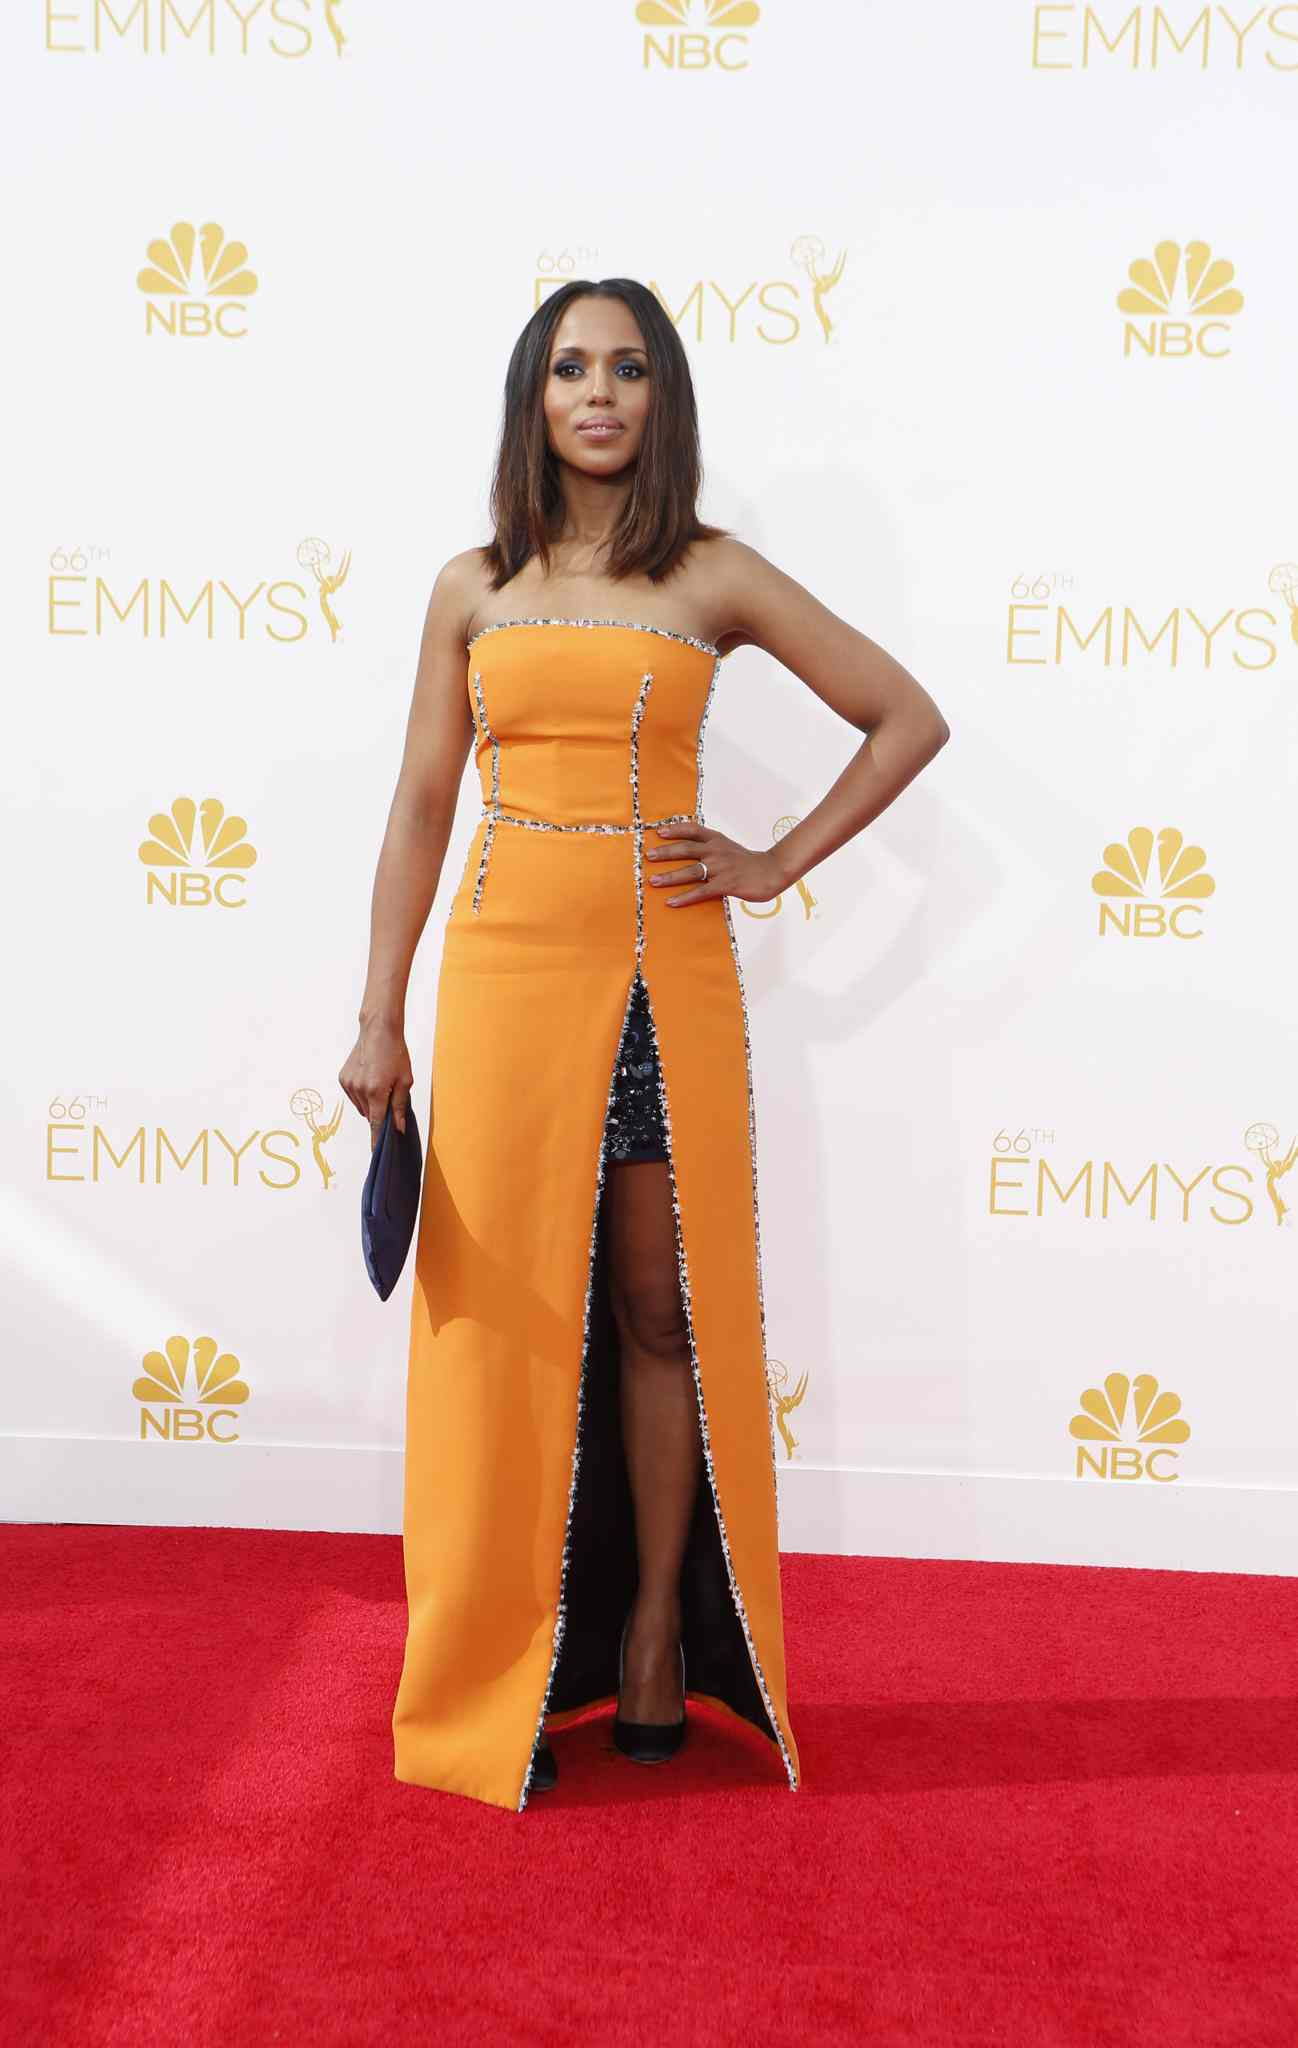 Kerry Washington (Scandal) arrives for the 66th Annual Primetime Emmy Awards at Nokia Theatre at L.A. Live in Los Angeles.